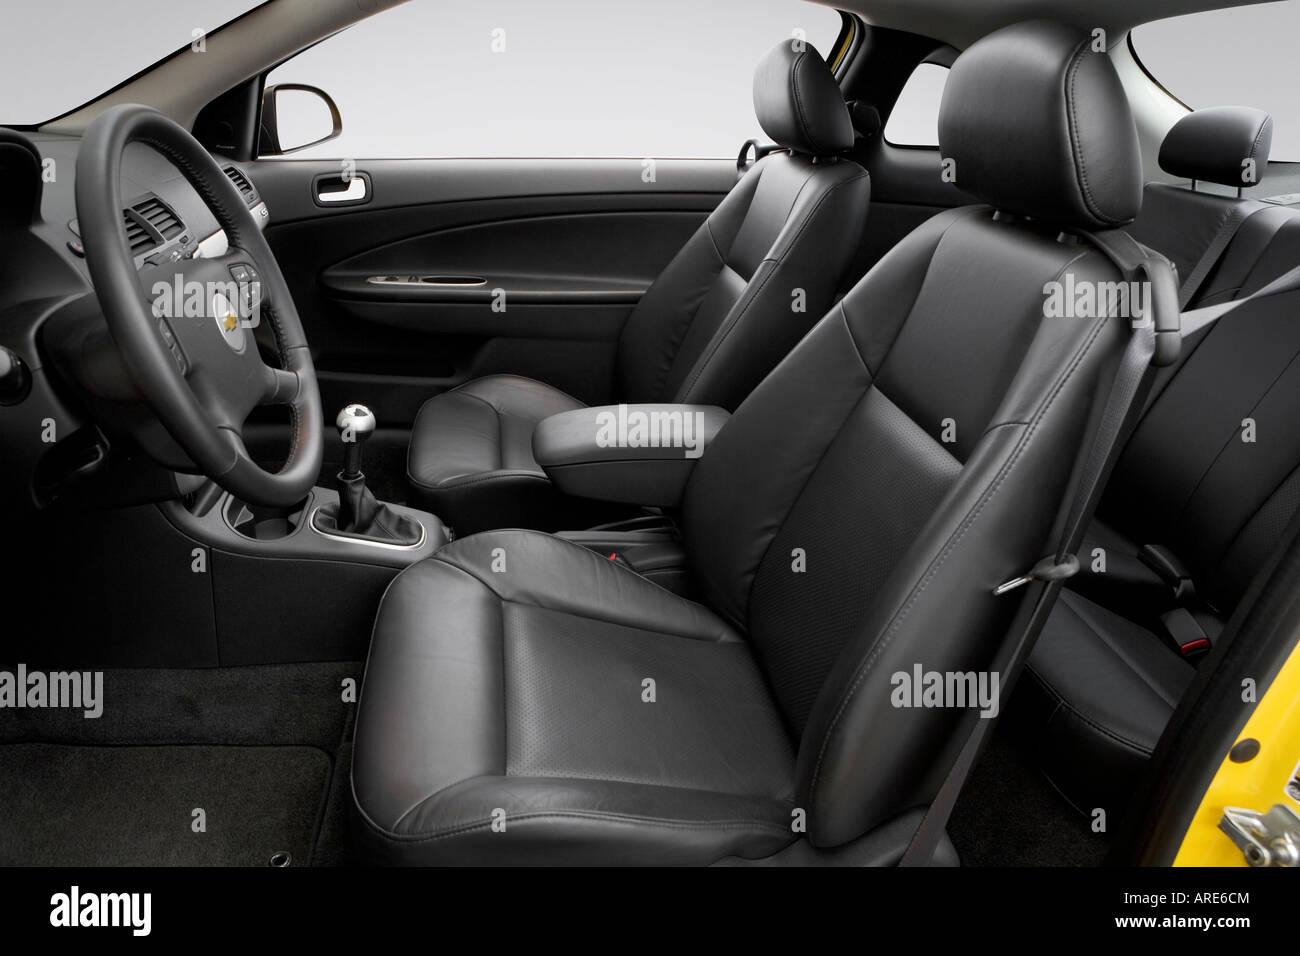 2006 chevrolet cobalt ss in yellow front seats stock. Black Bedroom Furniture Sets. Home Design Ideas